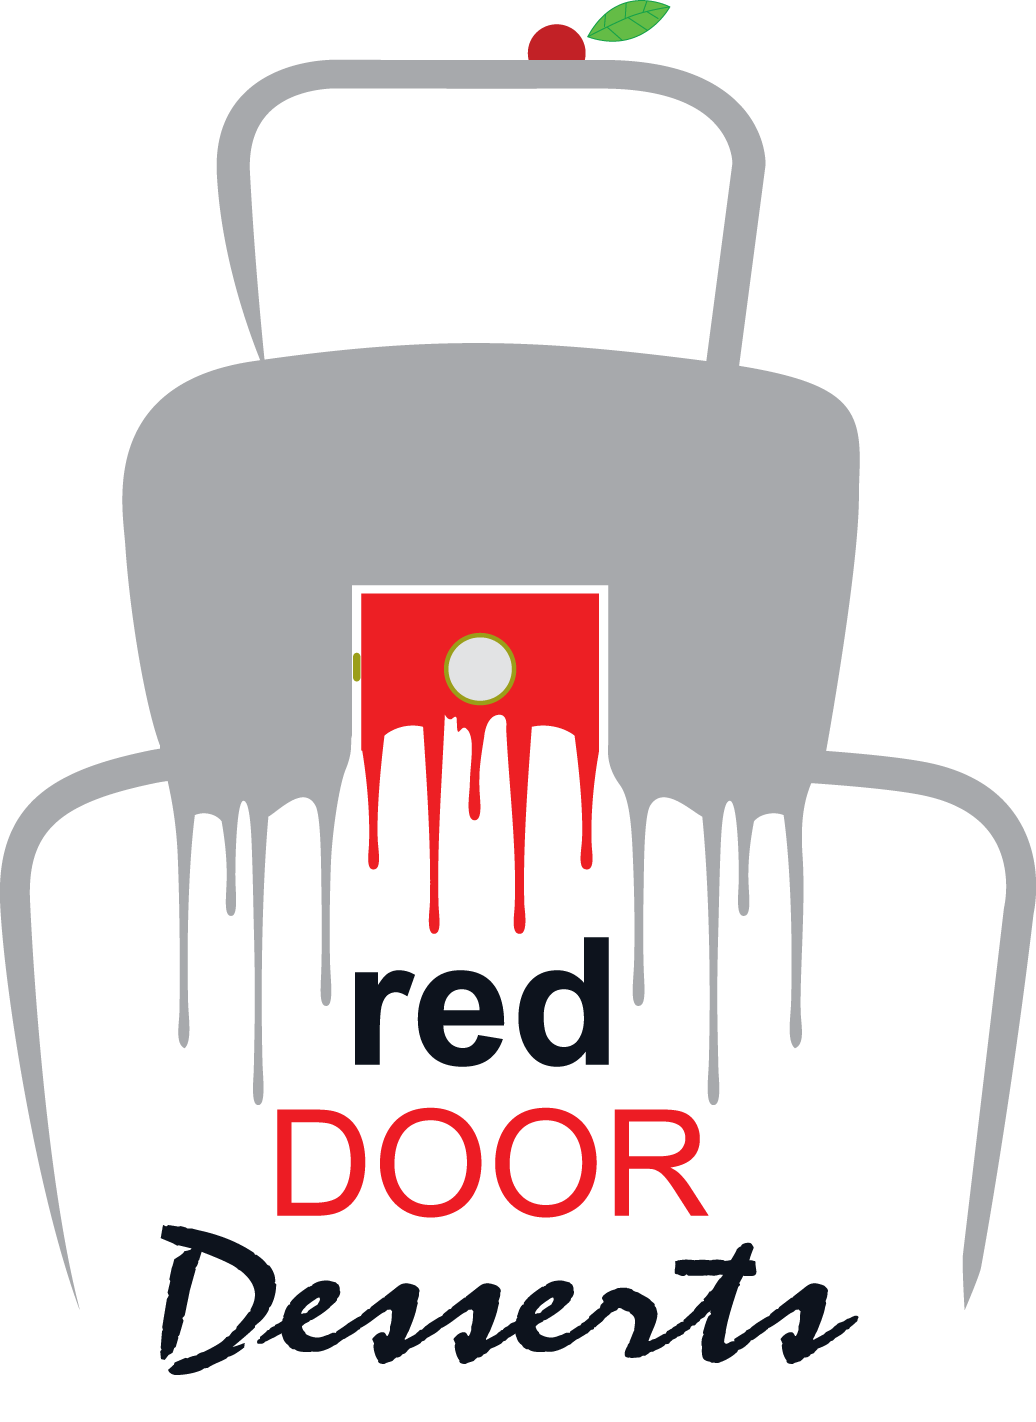 Logo Design by modo - Entry No. 106 in the Logo Design Contest Fun Logo Design for Red Door Desserts.